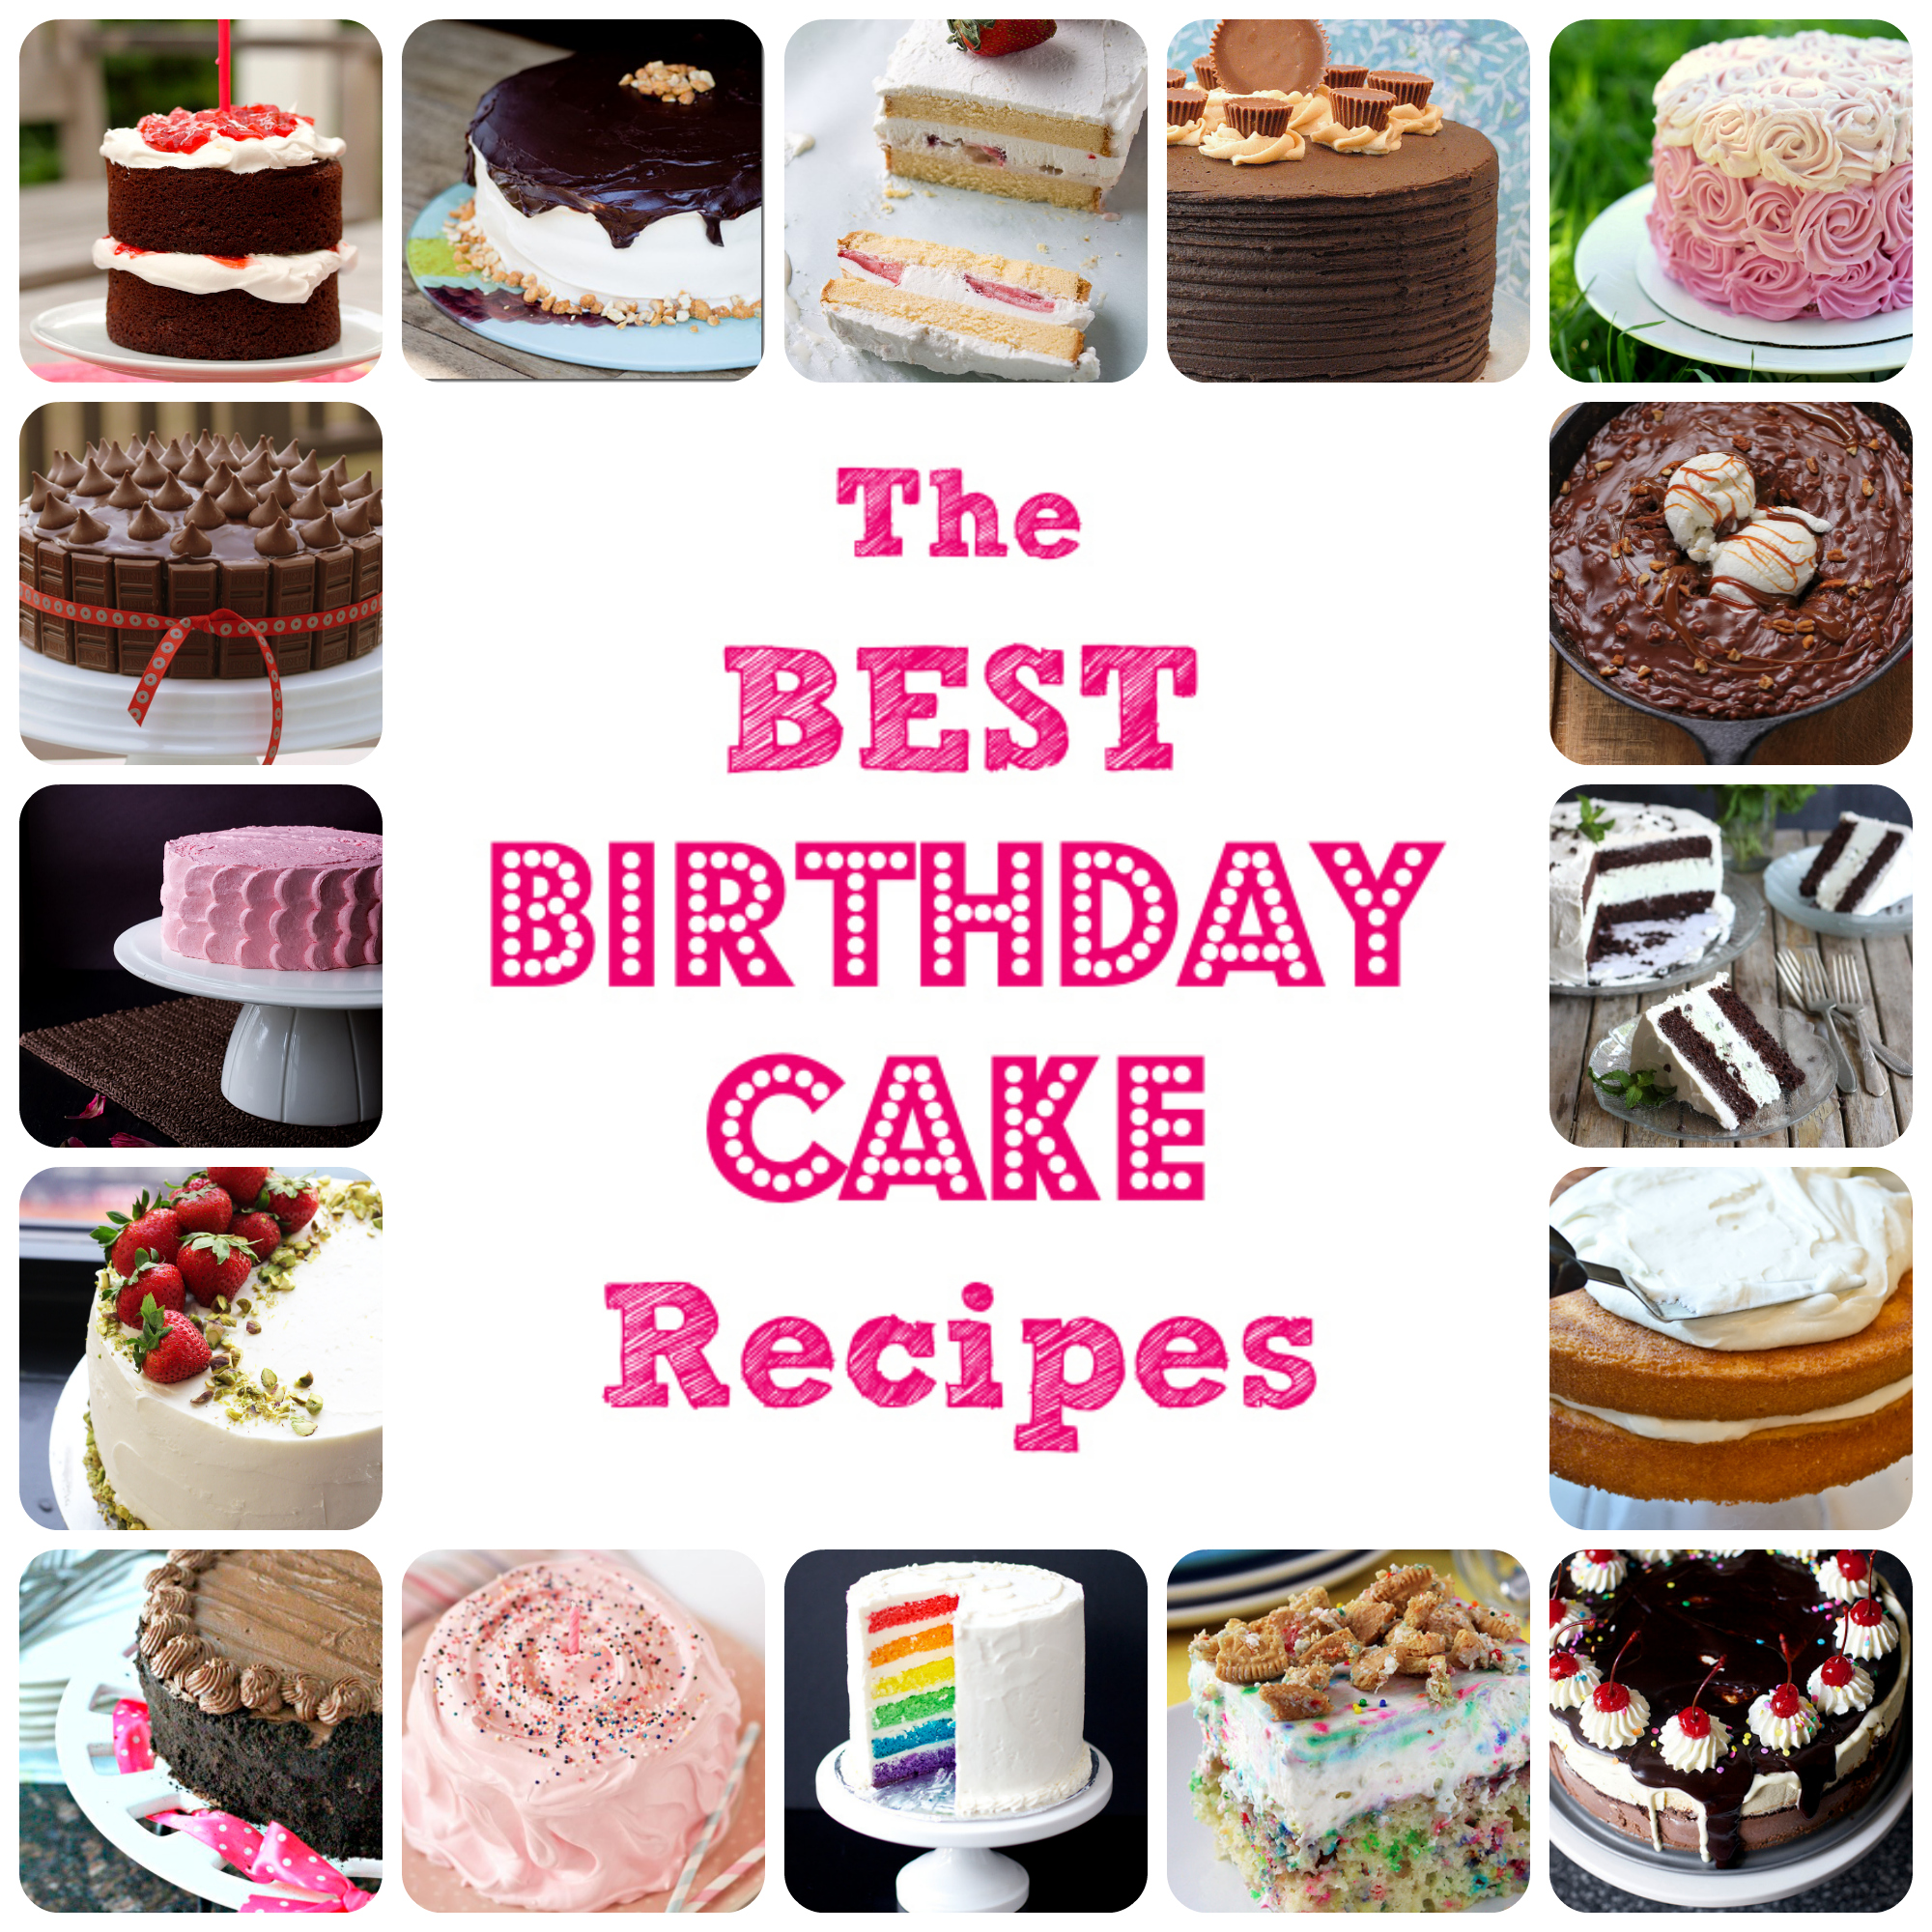 The Best Birthday Cake Recipes!